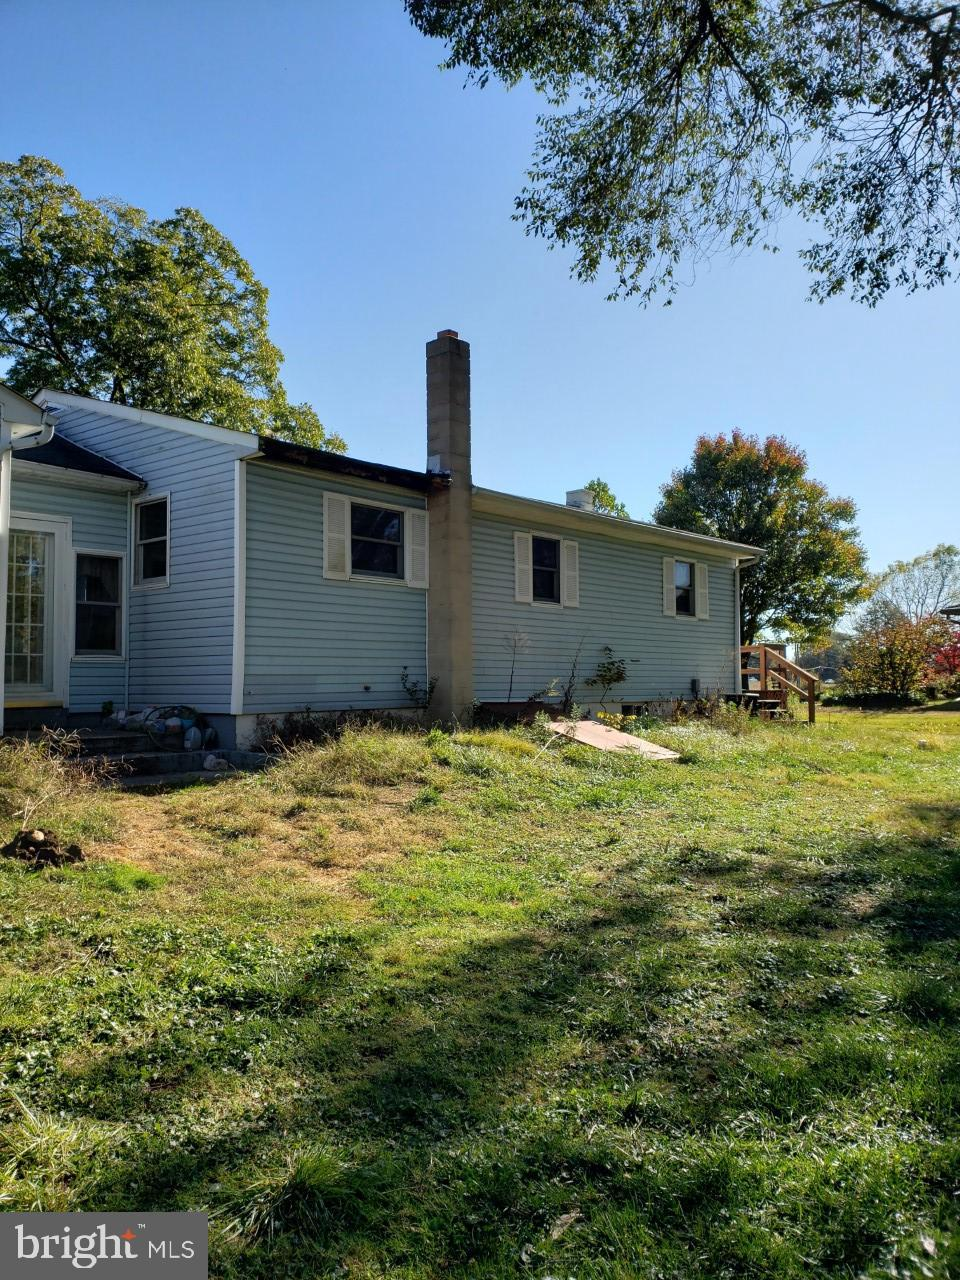 3 bedroom 1 bath rambler on over a 1/2 acre. Great opportunity to make this your own with some TLC.